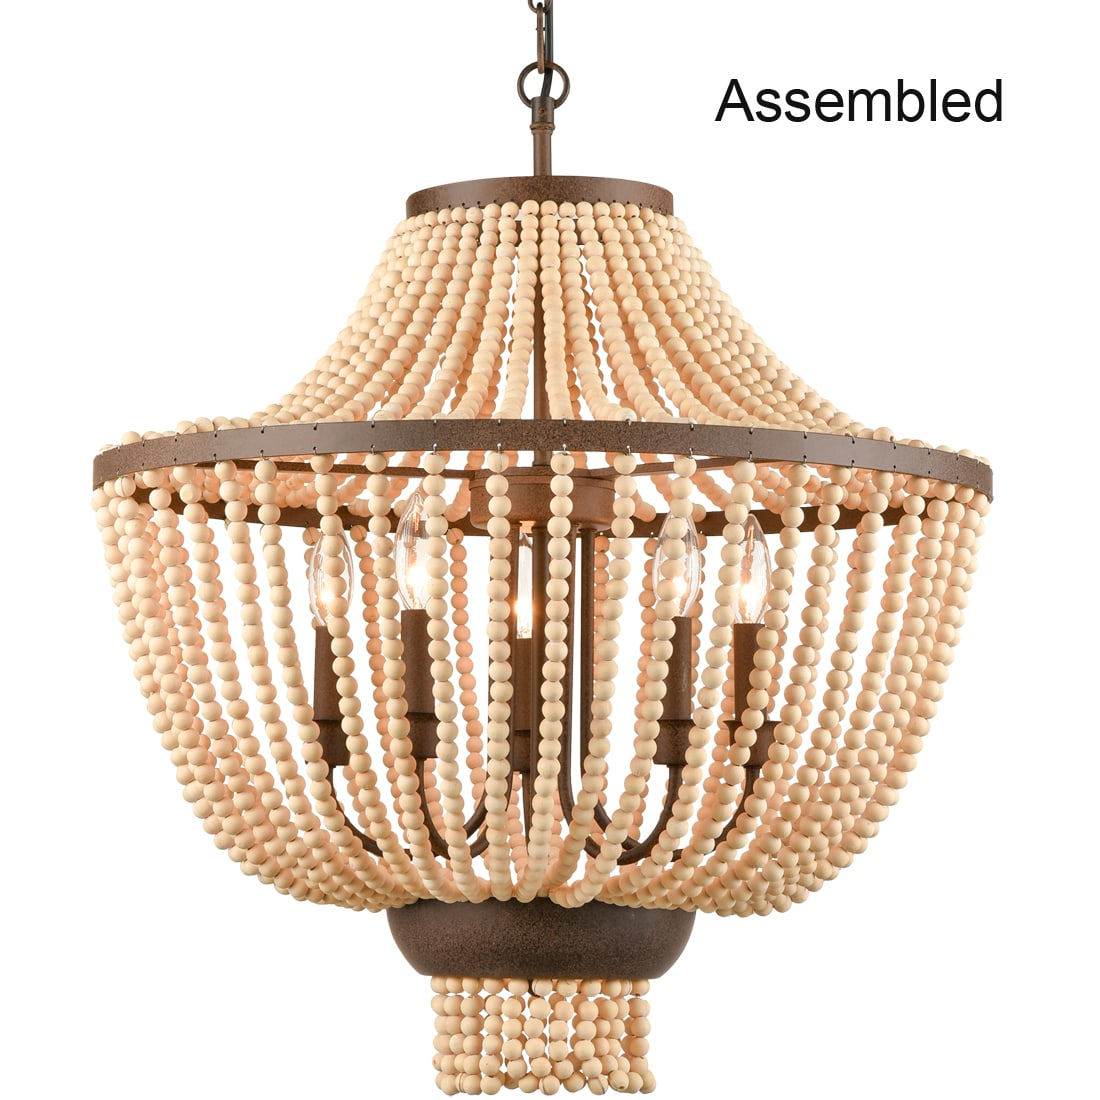 Rustic Wood Beaded Chandelier Candle Style Empire Shape – 5 Light